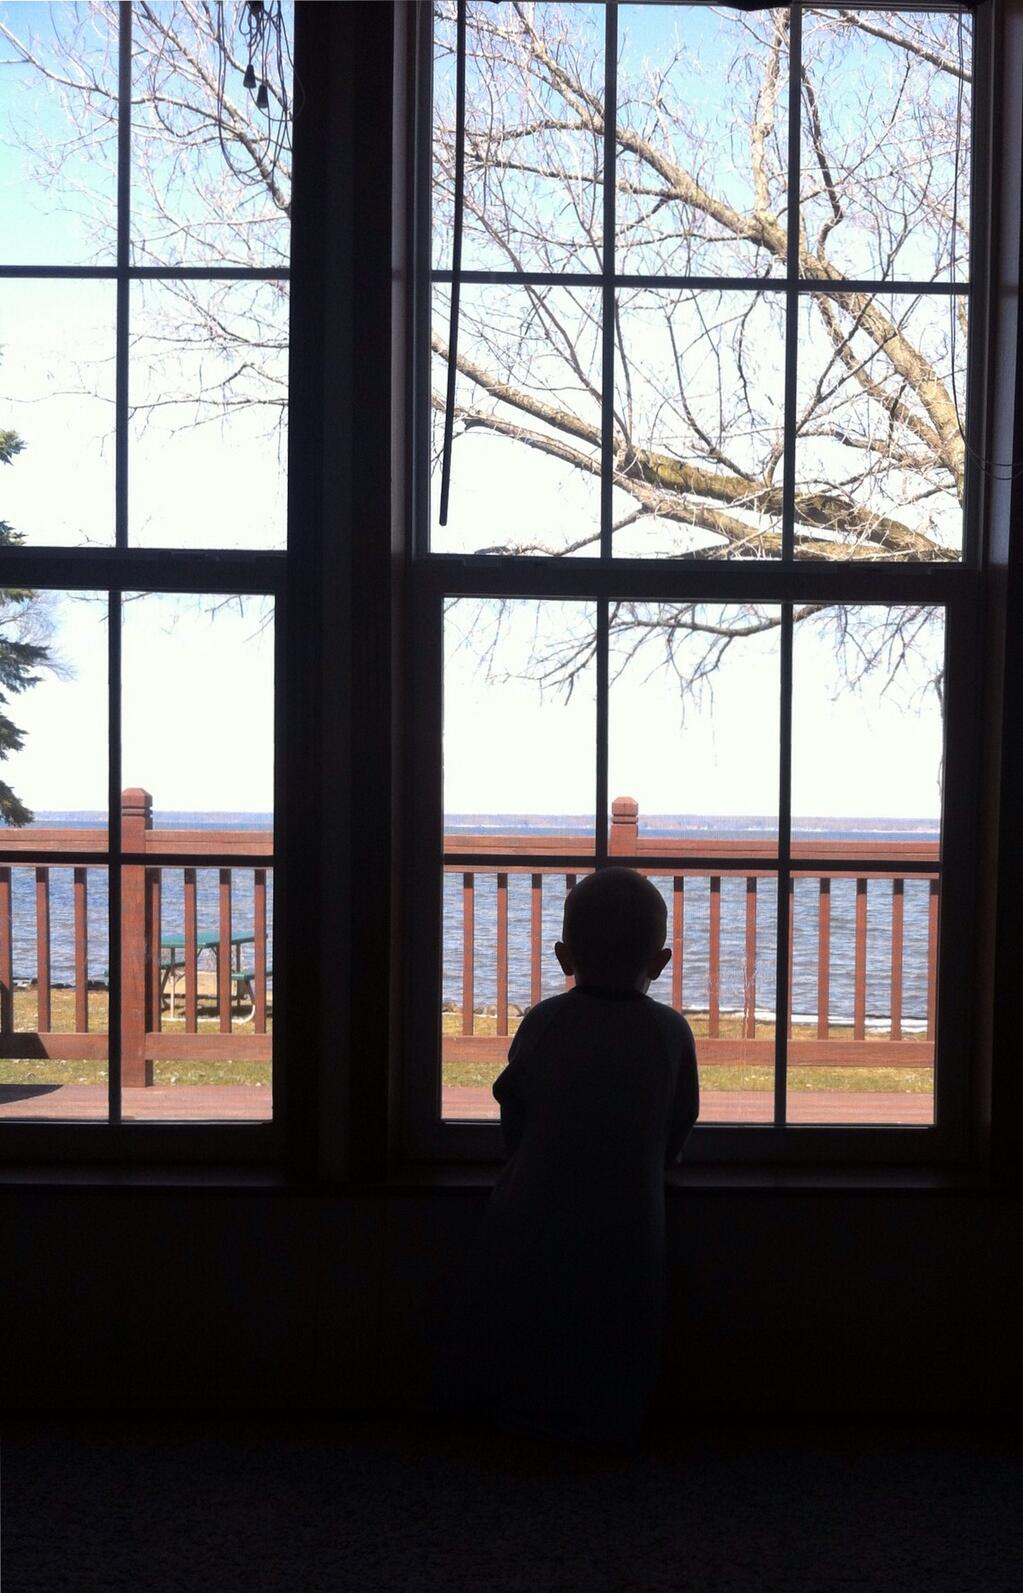 A Hidden Gem in Central New York @DinkerGiggles #cny #lakeoneida #nature #family